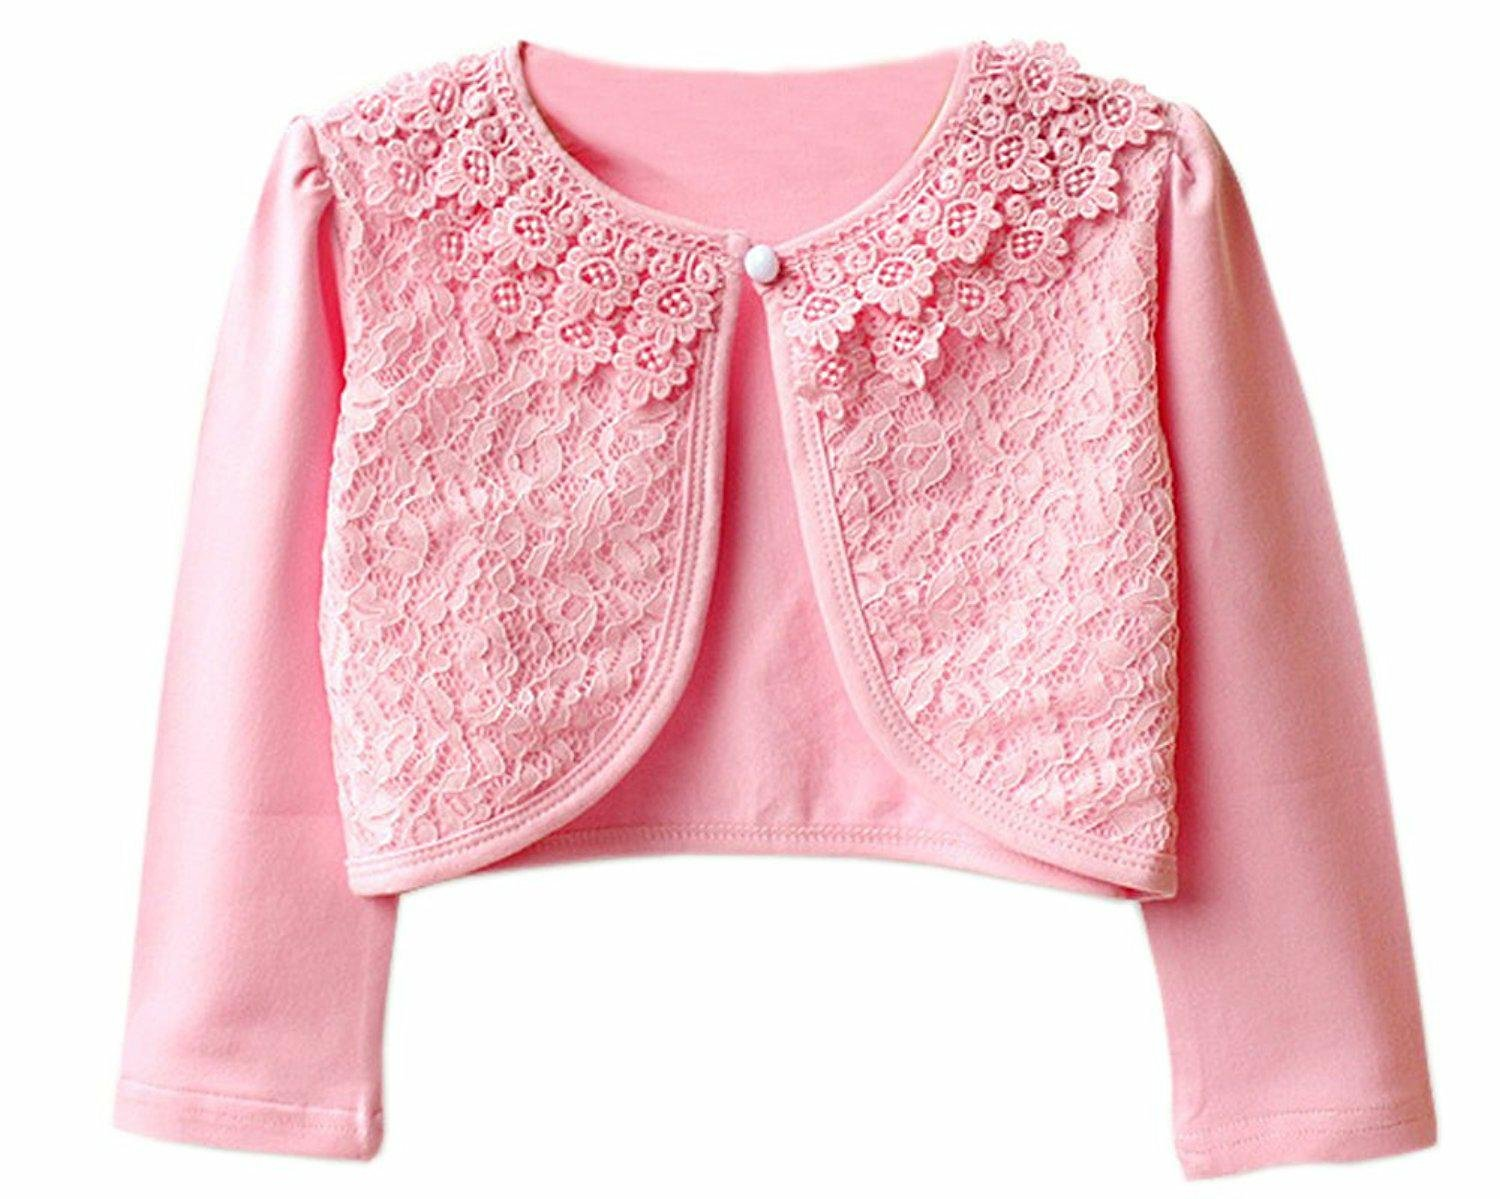 JX Roco Little Girls Long Sleeve Lace Bolero Jacket/Pointelle Shrug Cotton Cardigan Dress Cover Up for Church Wedding Pink,140=7-8years